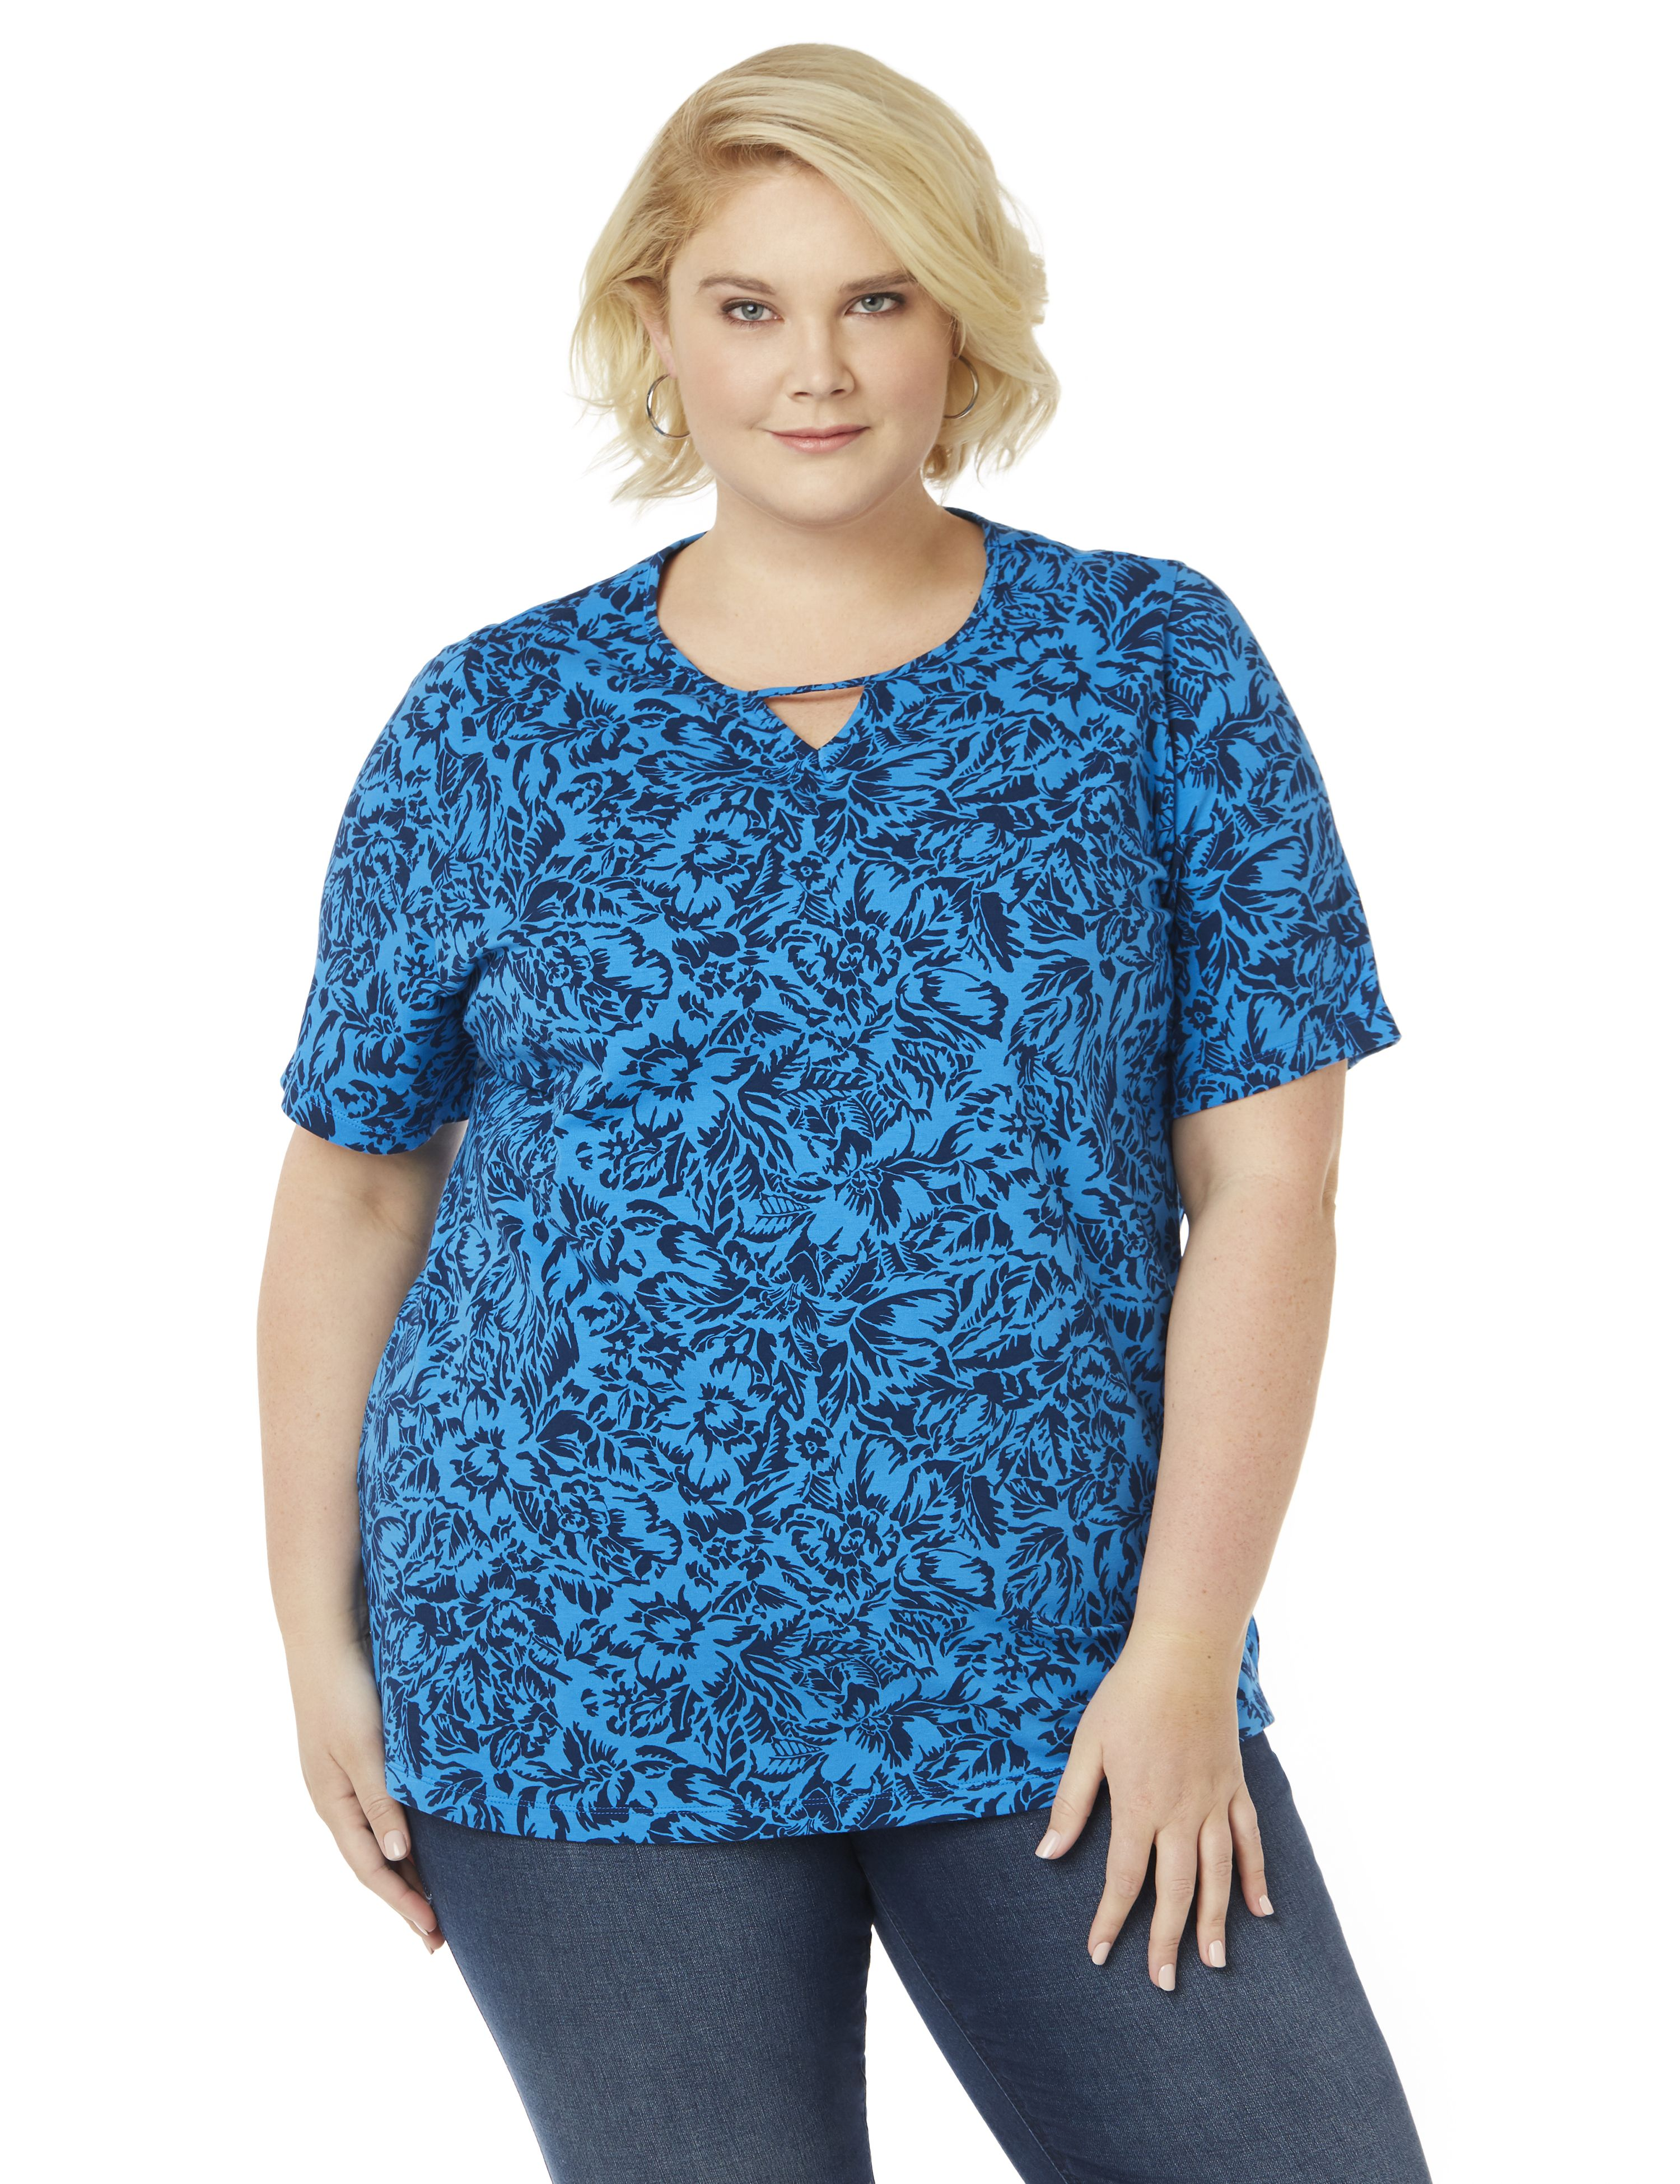 Etched Floral Top 300062270